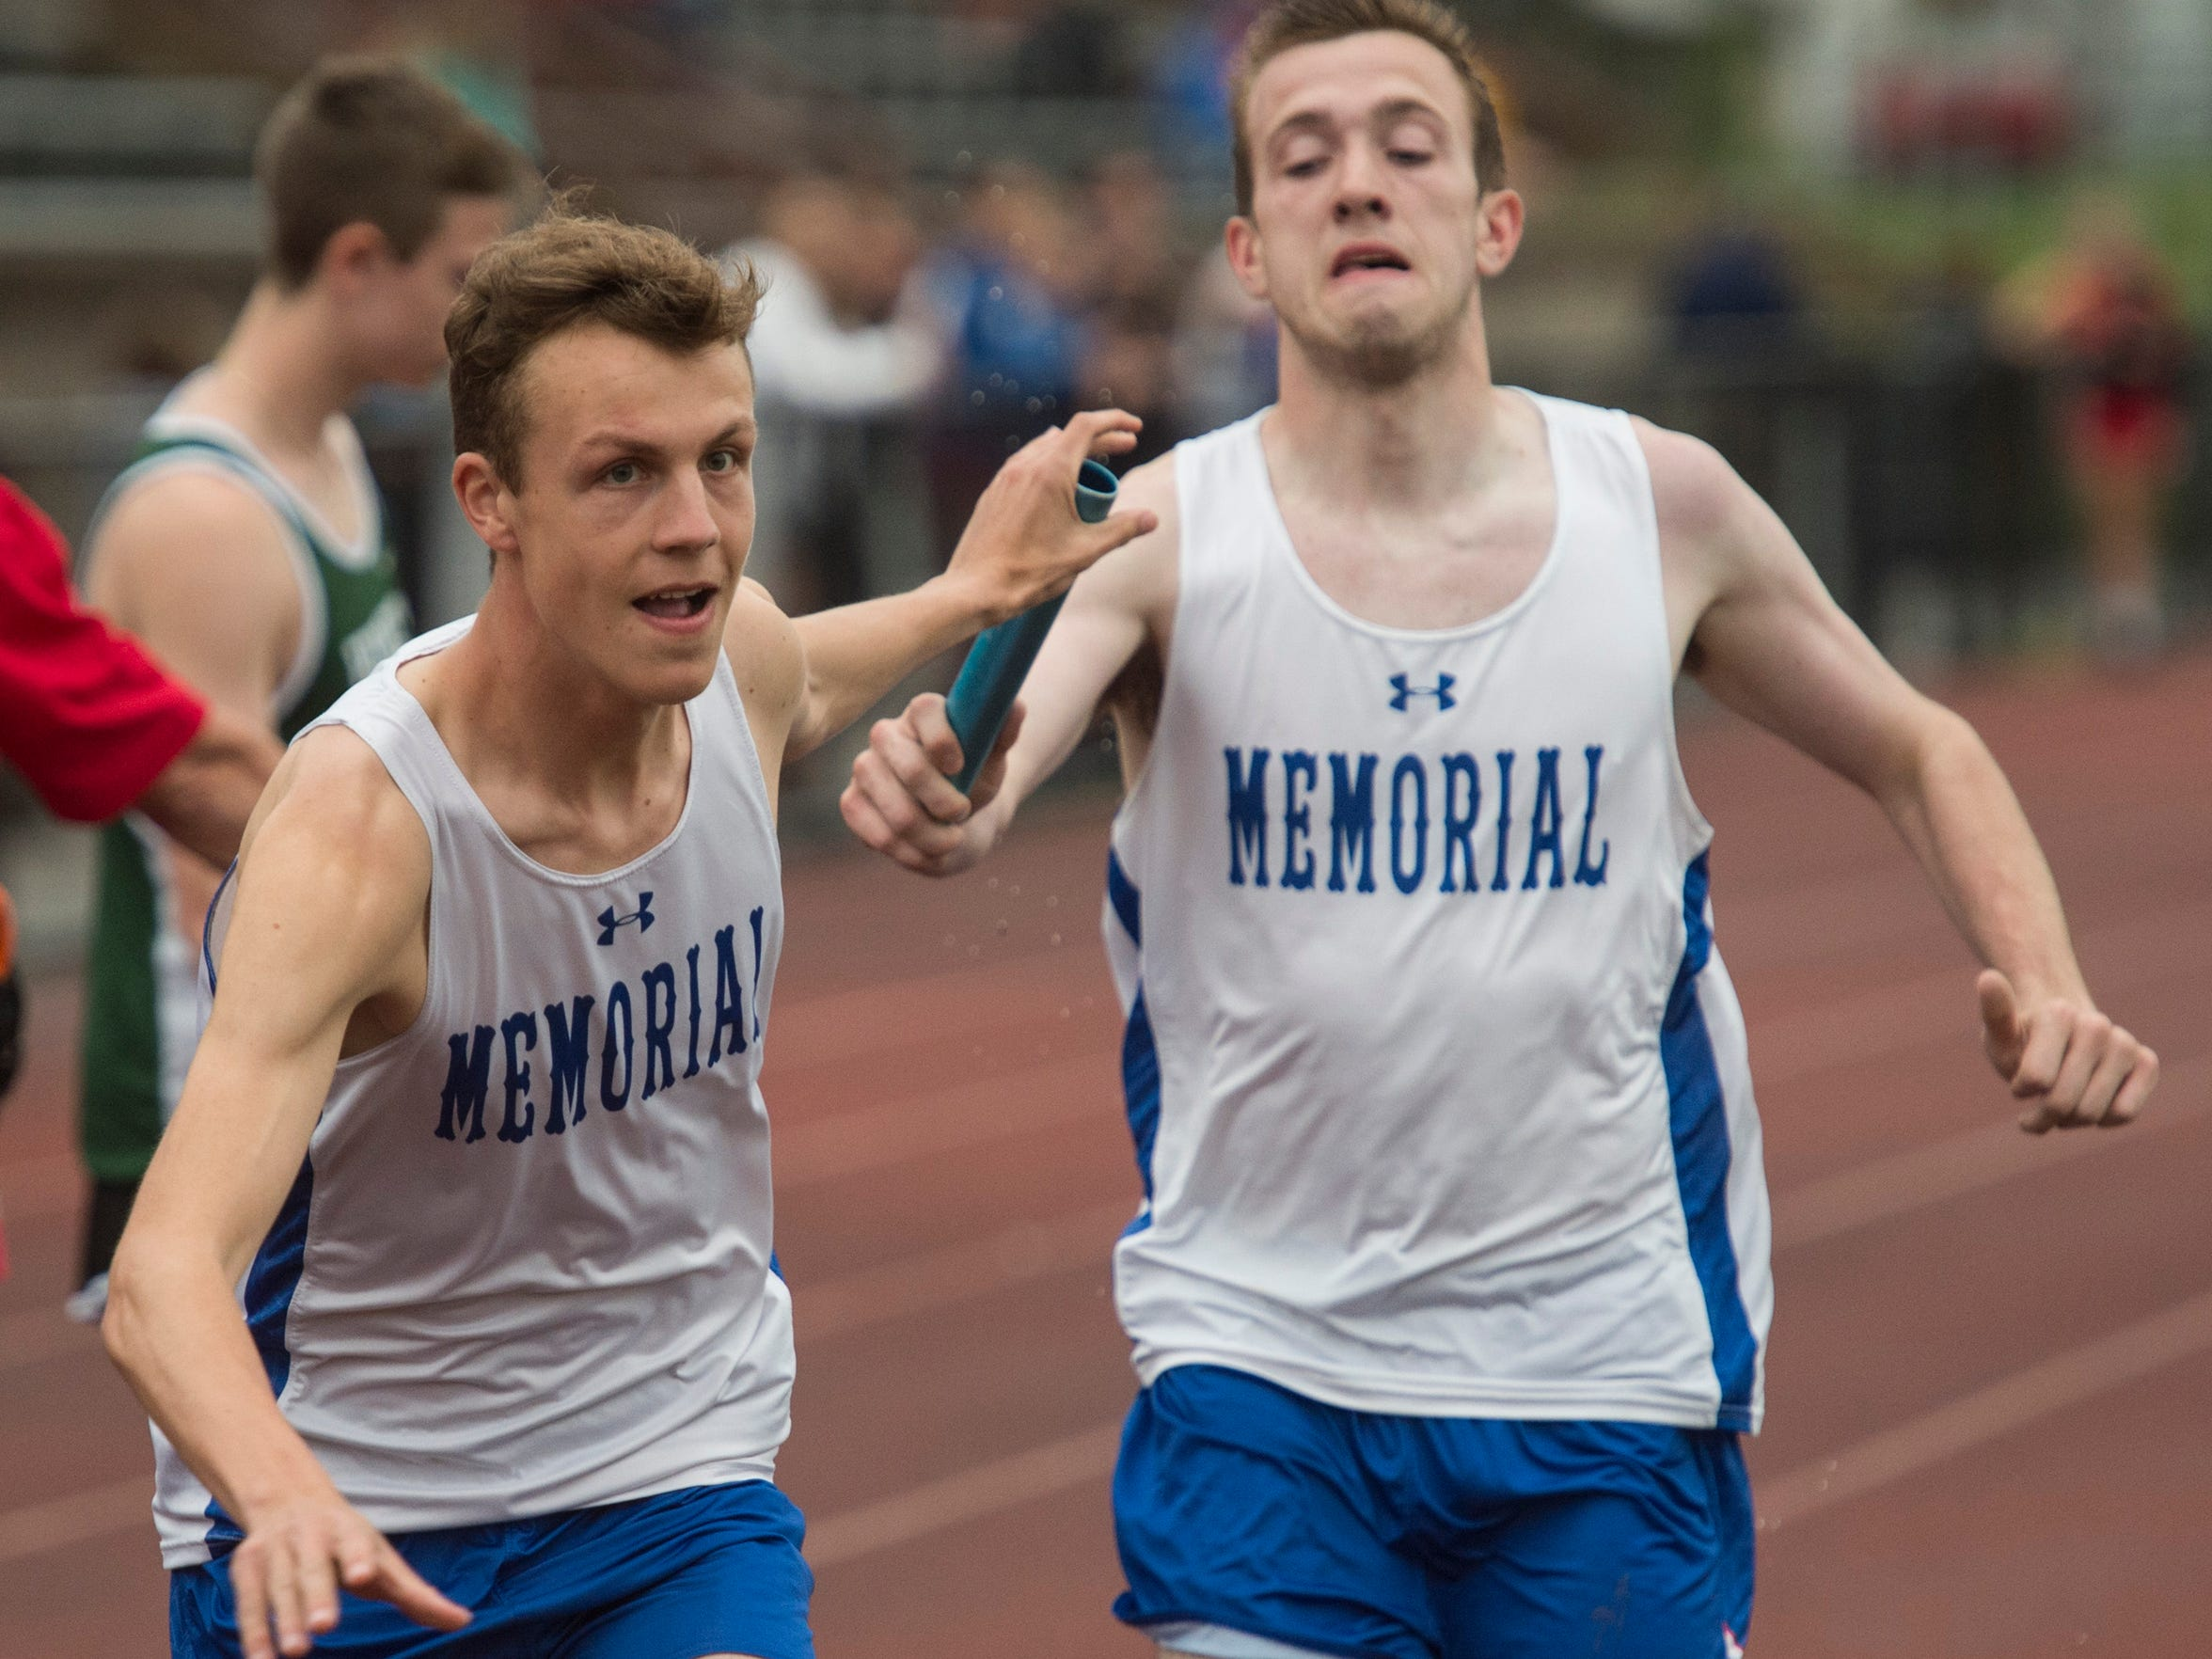 Memorial's Matthew Schadler, left, grabs the baton from teammate Andrew Cross during the boys 3200 meter relay during the first day of the SIAC track meet at Central High School on Tuesday, May 3, 2018.